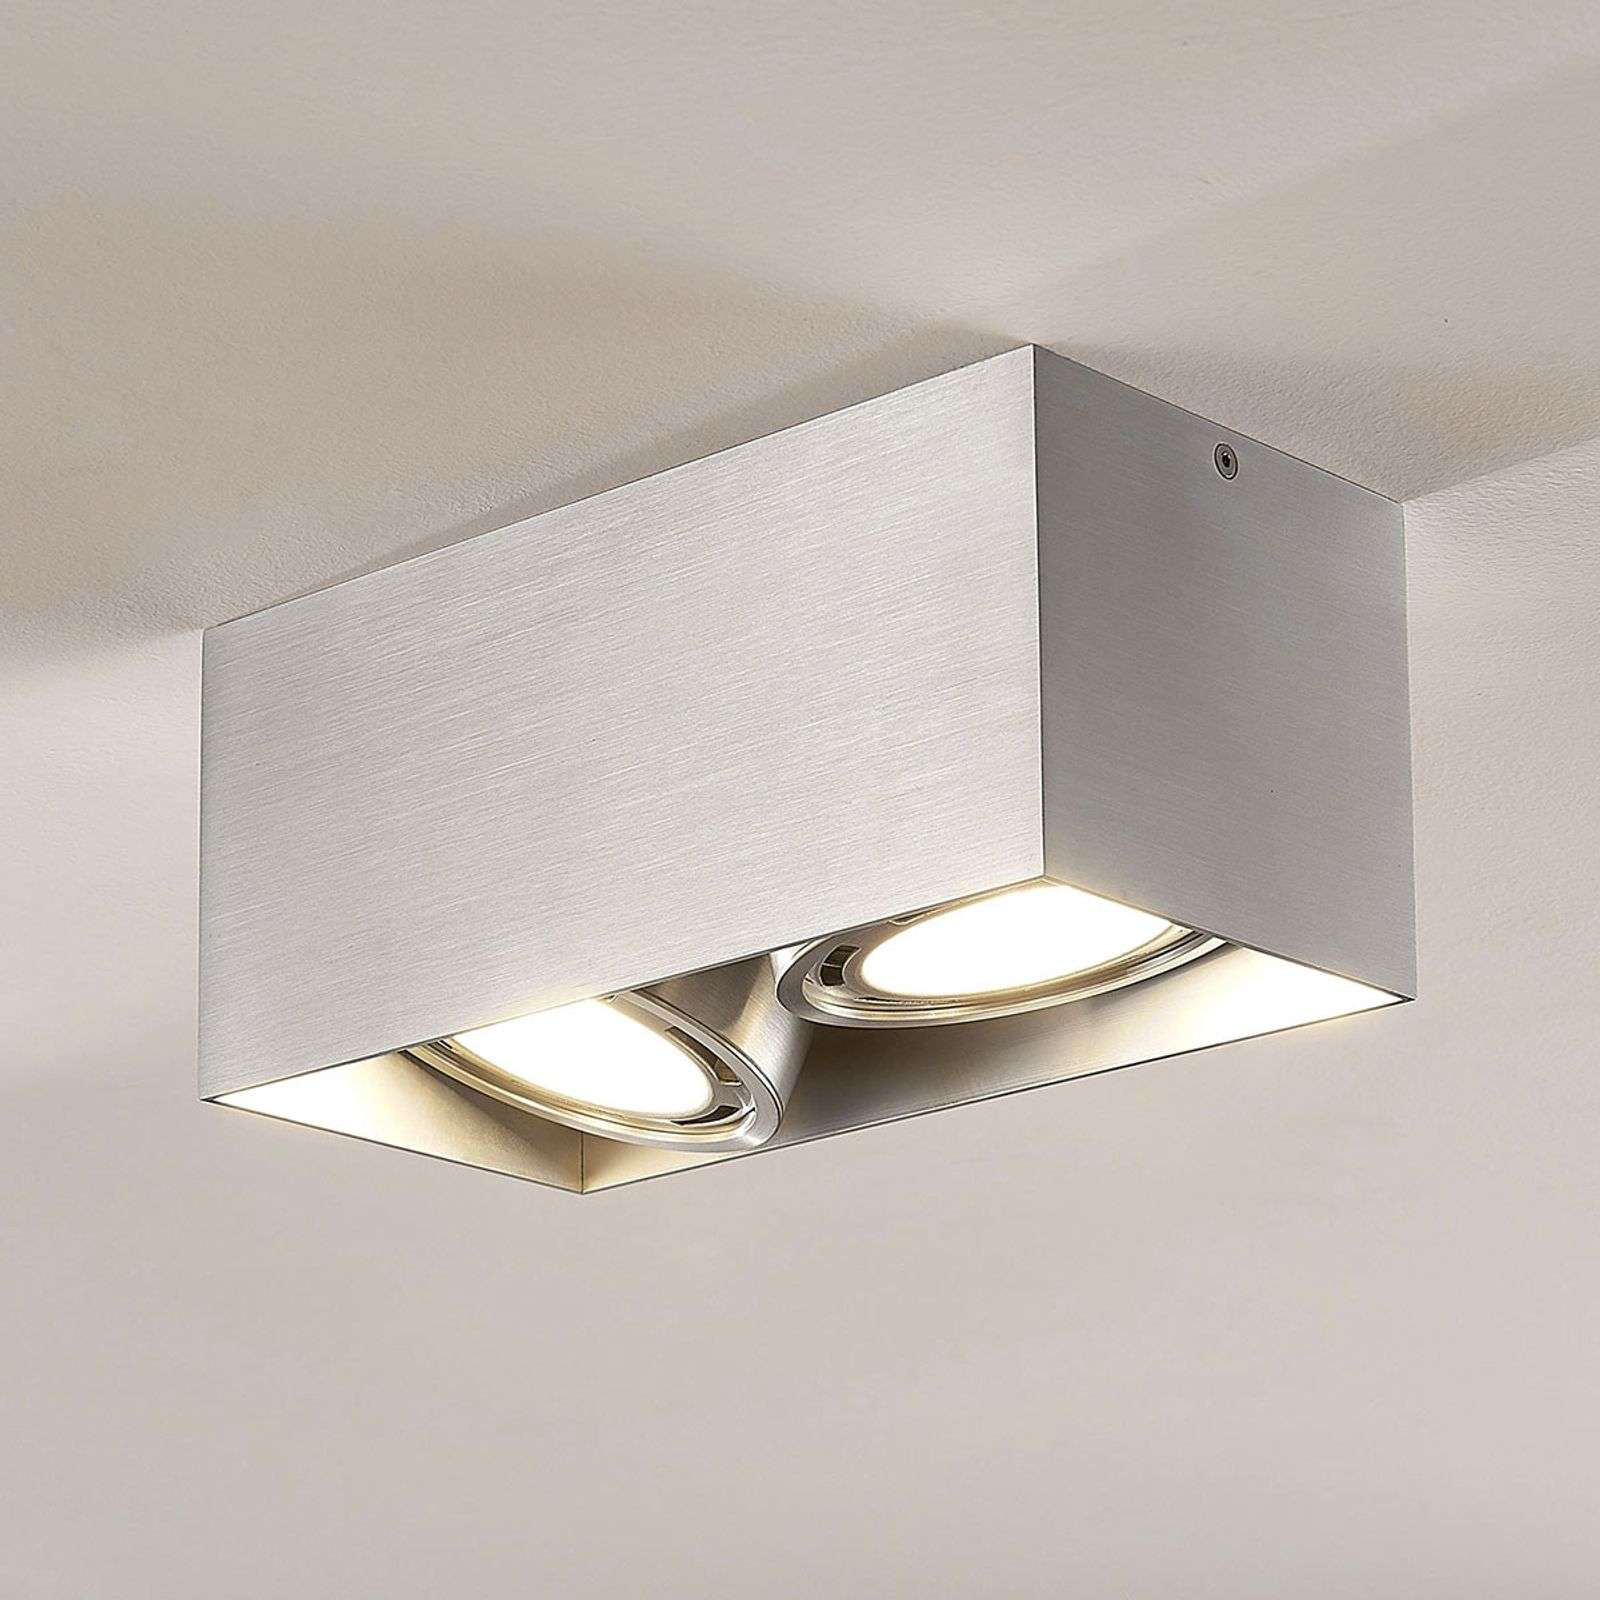 Downlight LED Rosalie à 2 lampes, carré, alu